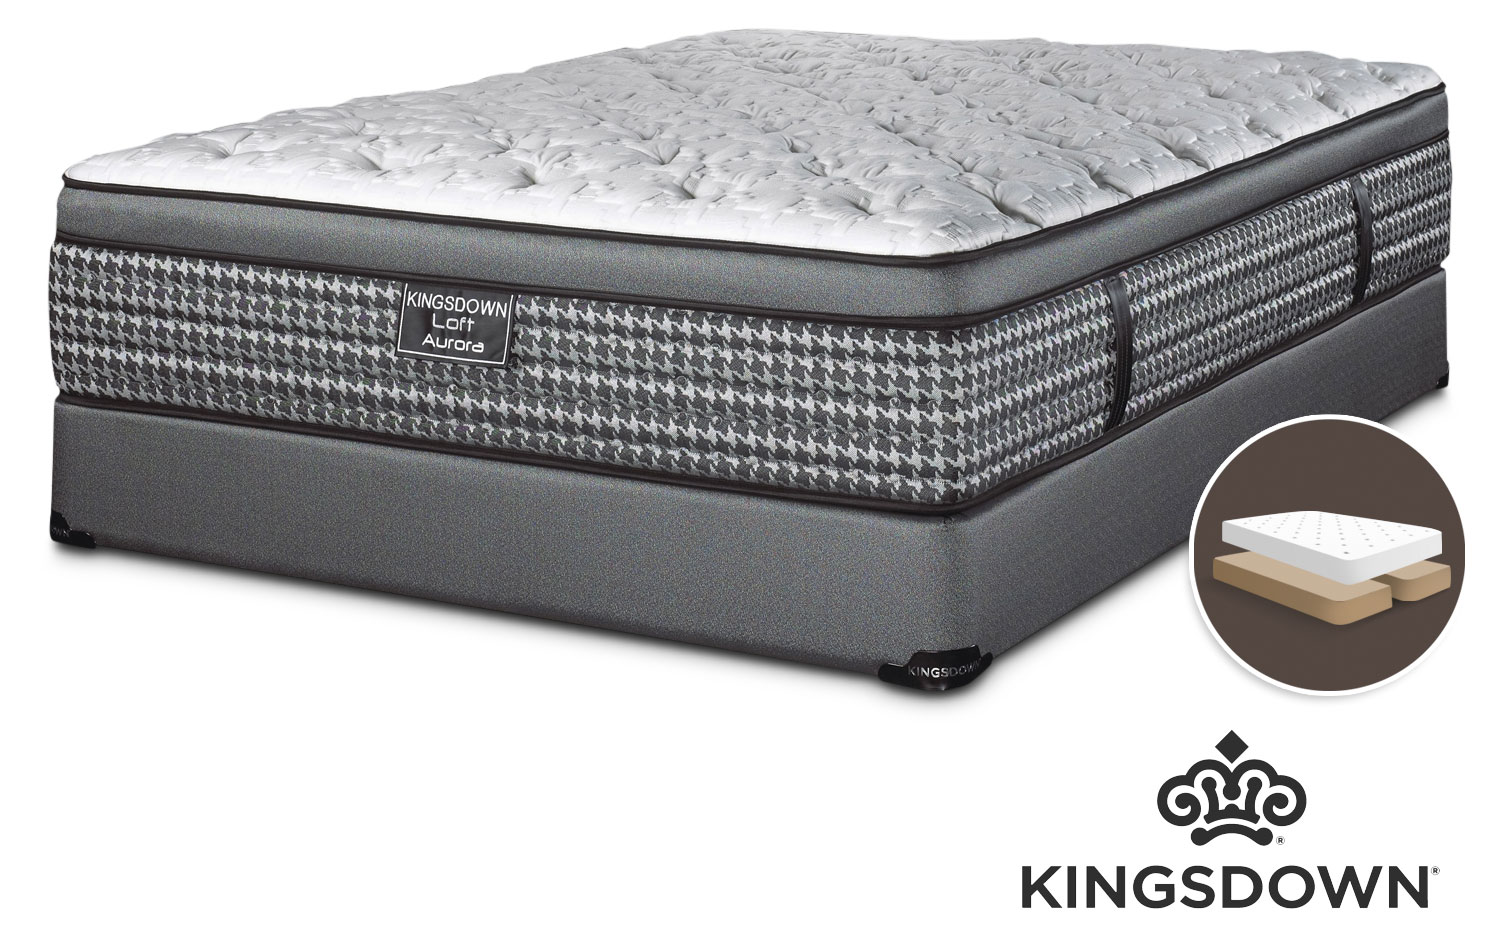 Kingsdown Aurora King Mattress/Boxspring Set